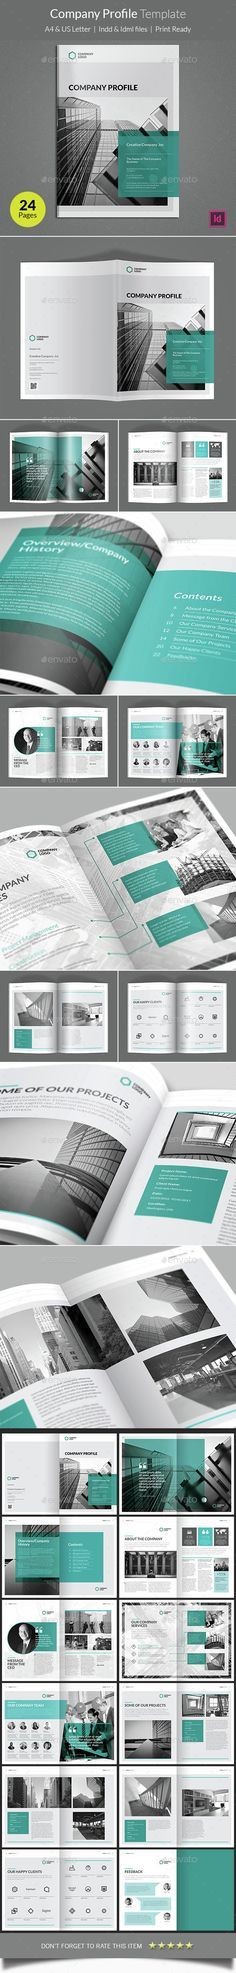 [Inspirations éditoriales] - Company Profile Brochure Template InDesign INDD. Download here: http://graphicriver.net/item/company-profile-template/14848589?ref=ksioks